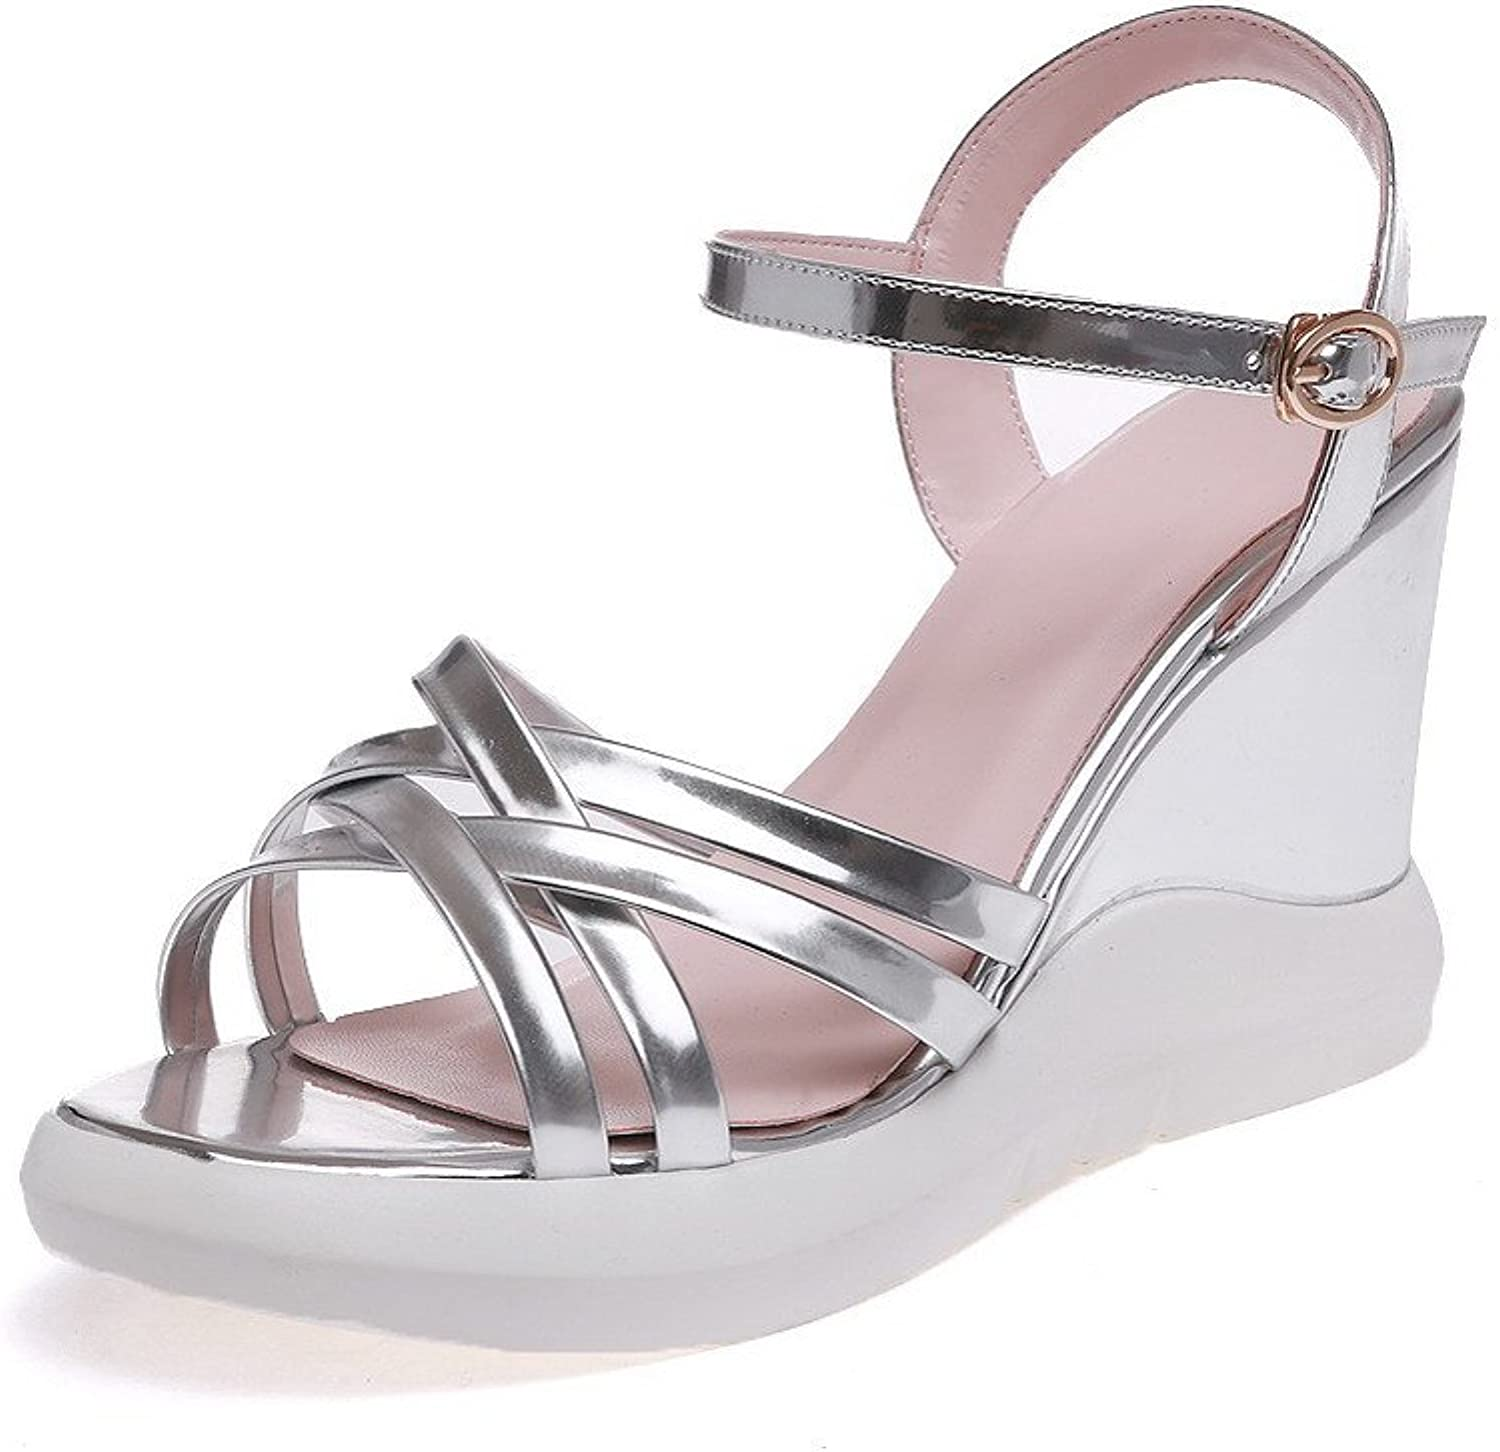 AmoonyFashion Women's Solid Patent Leather High Heels Open Toe Buckle Sandals